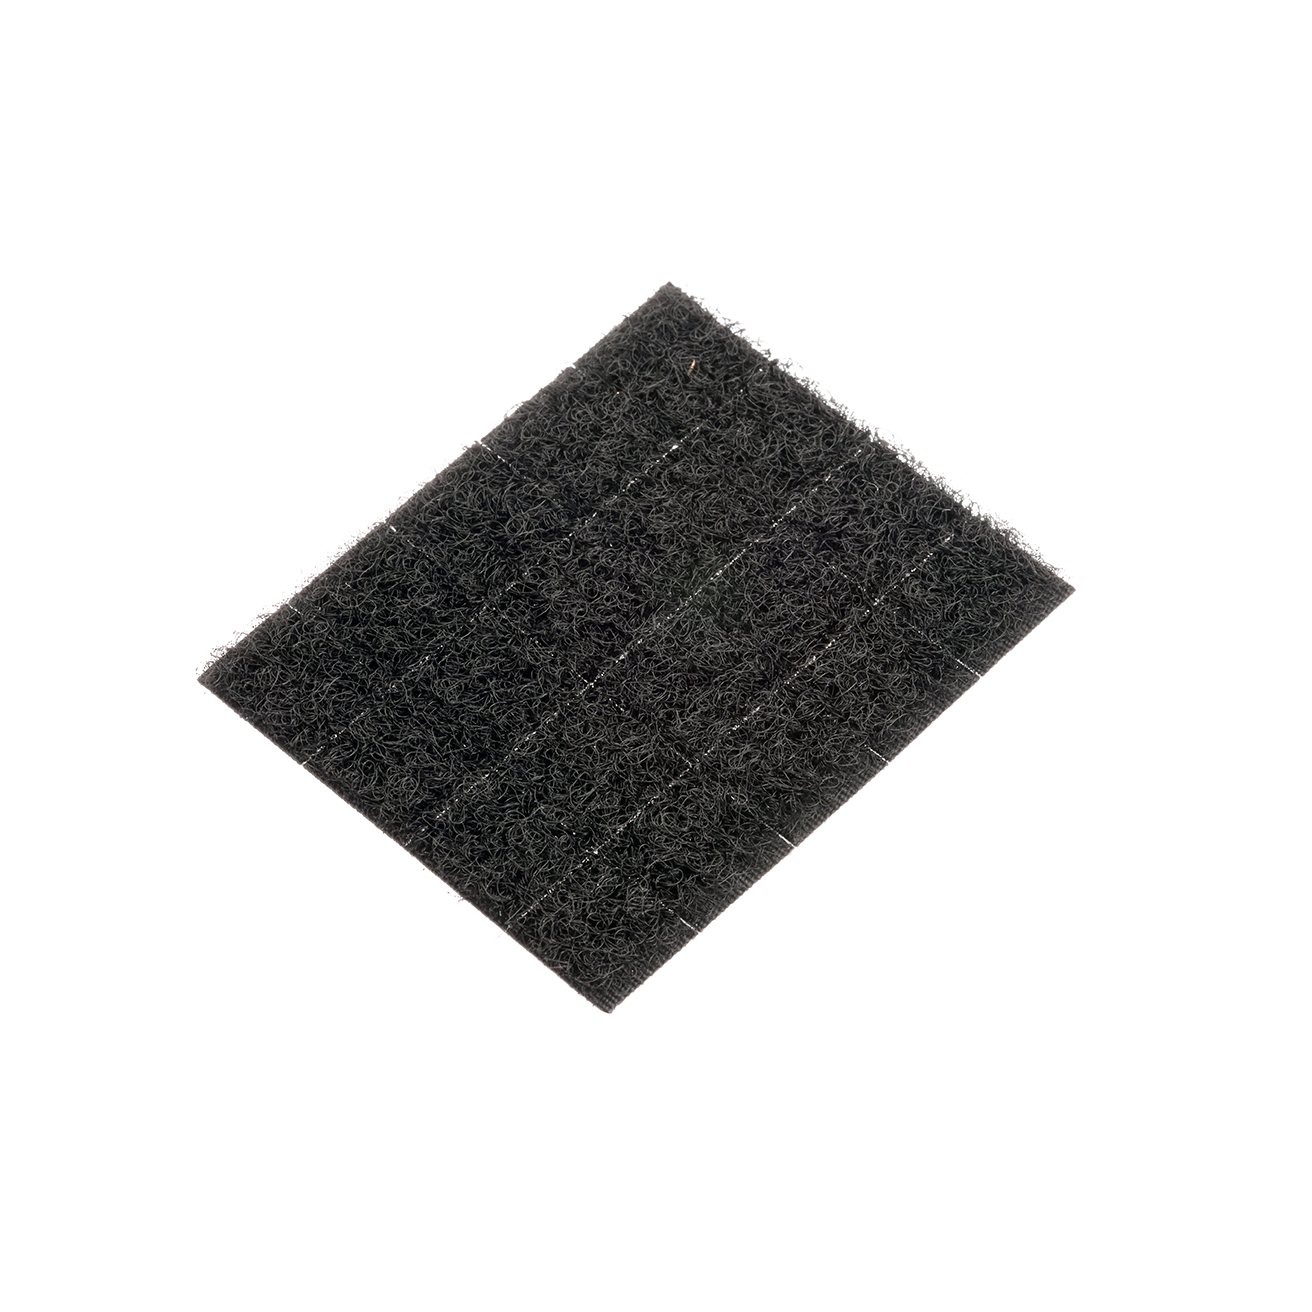 Fleece pad 12x12mm